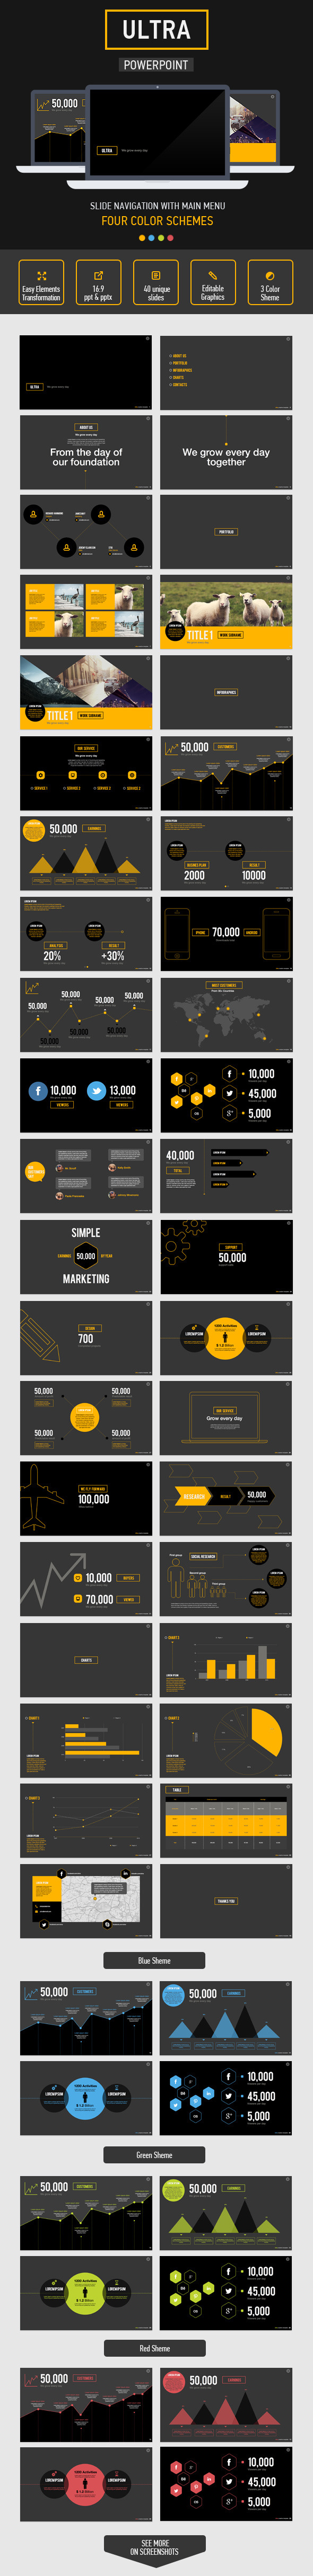 Ultra PowerPoint Presentation Template - Creative PowerPoint Templates